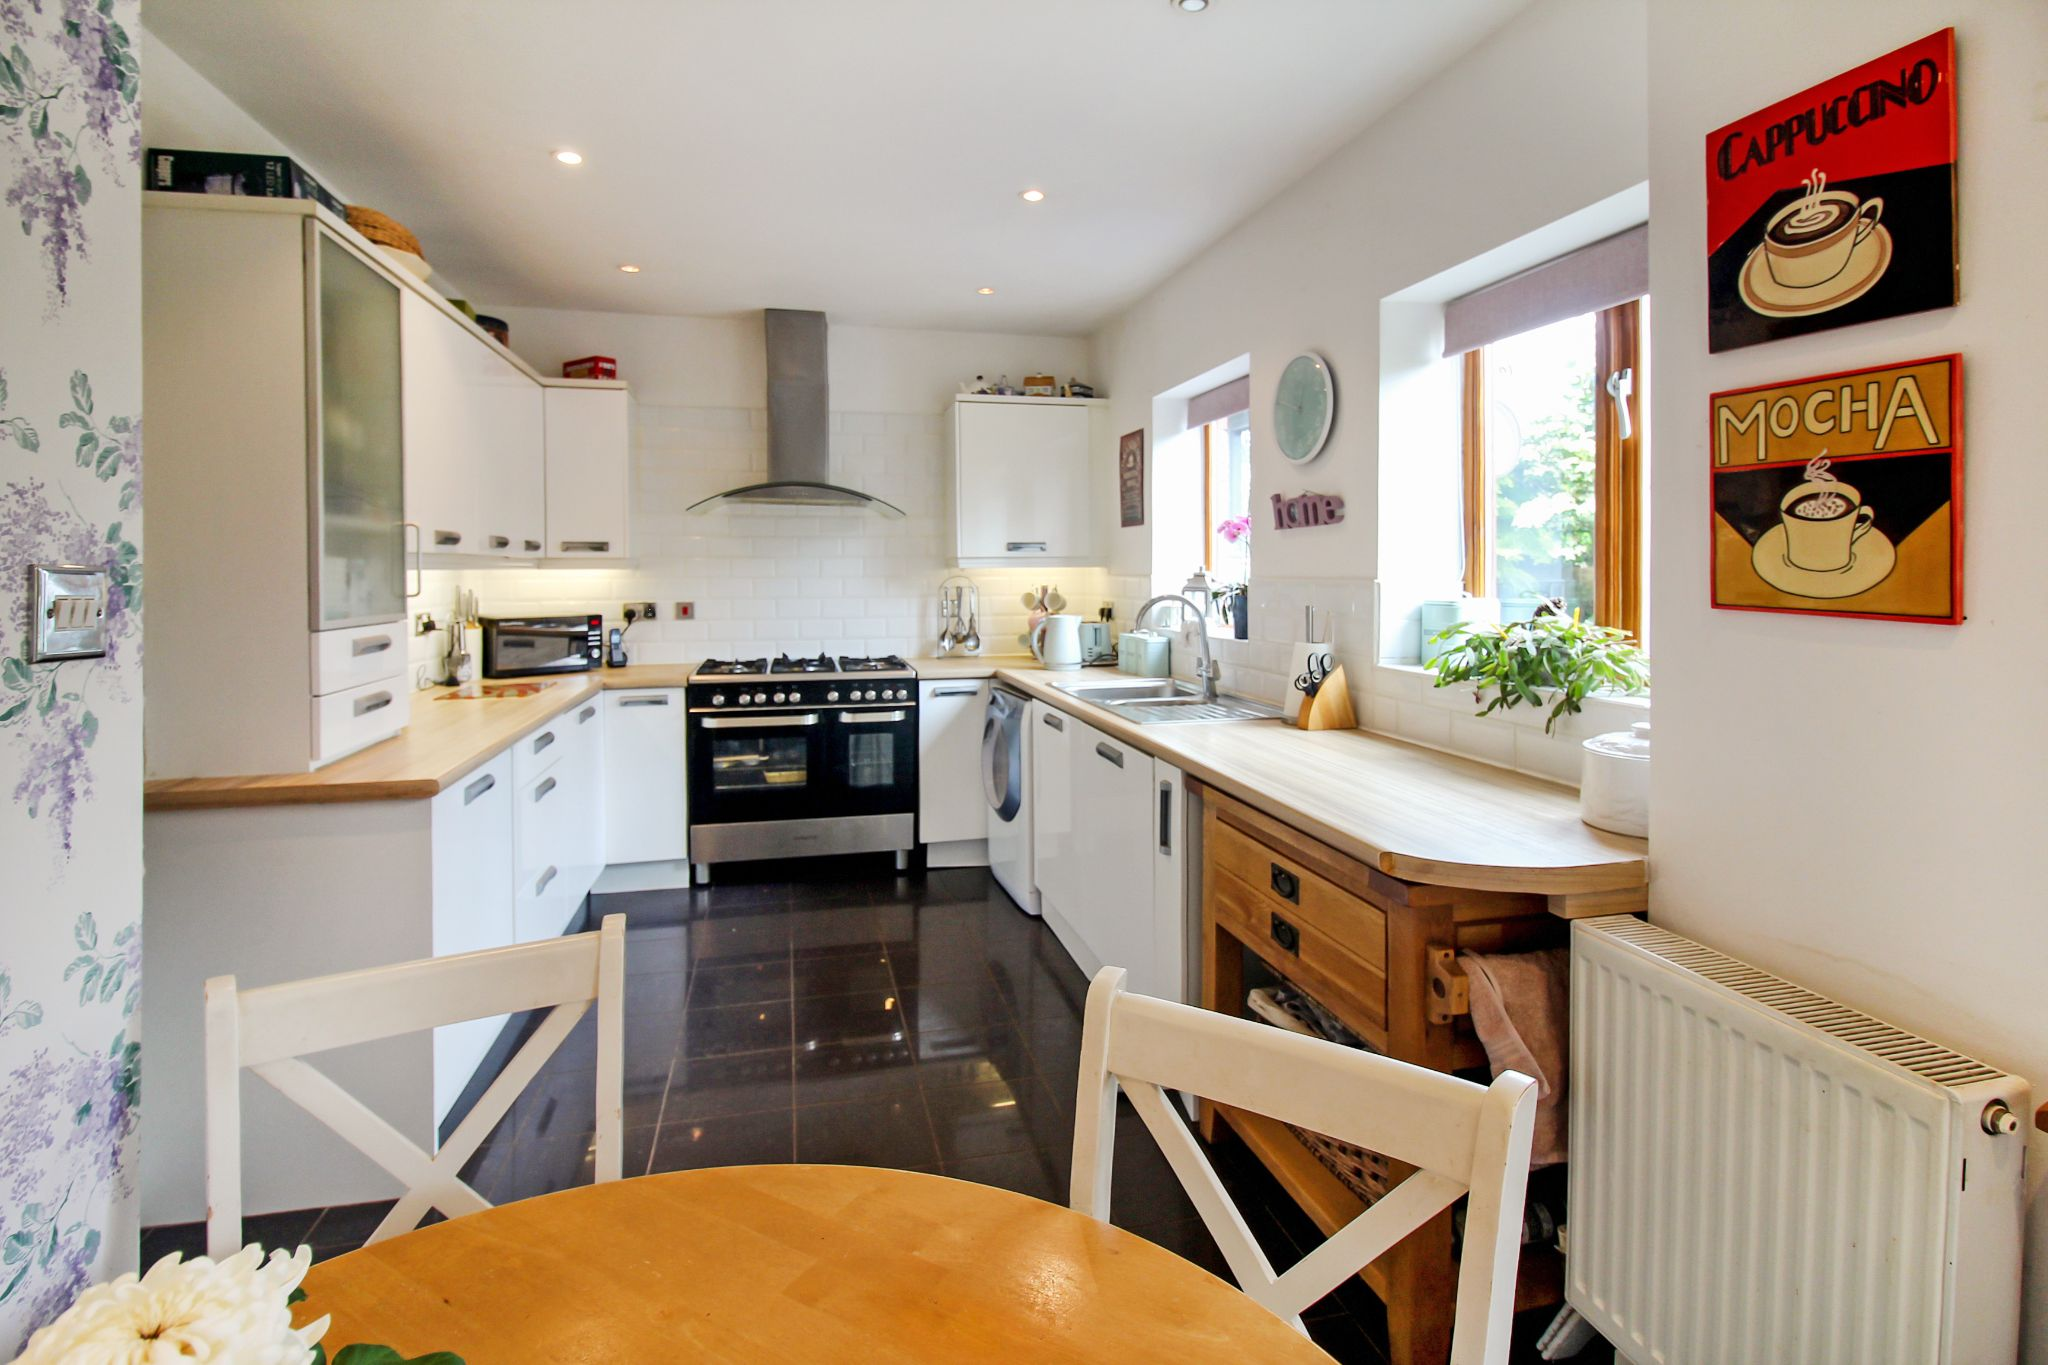 3 bedroom semi-detached house SSTC in Solihull - Photograph 5.